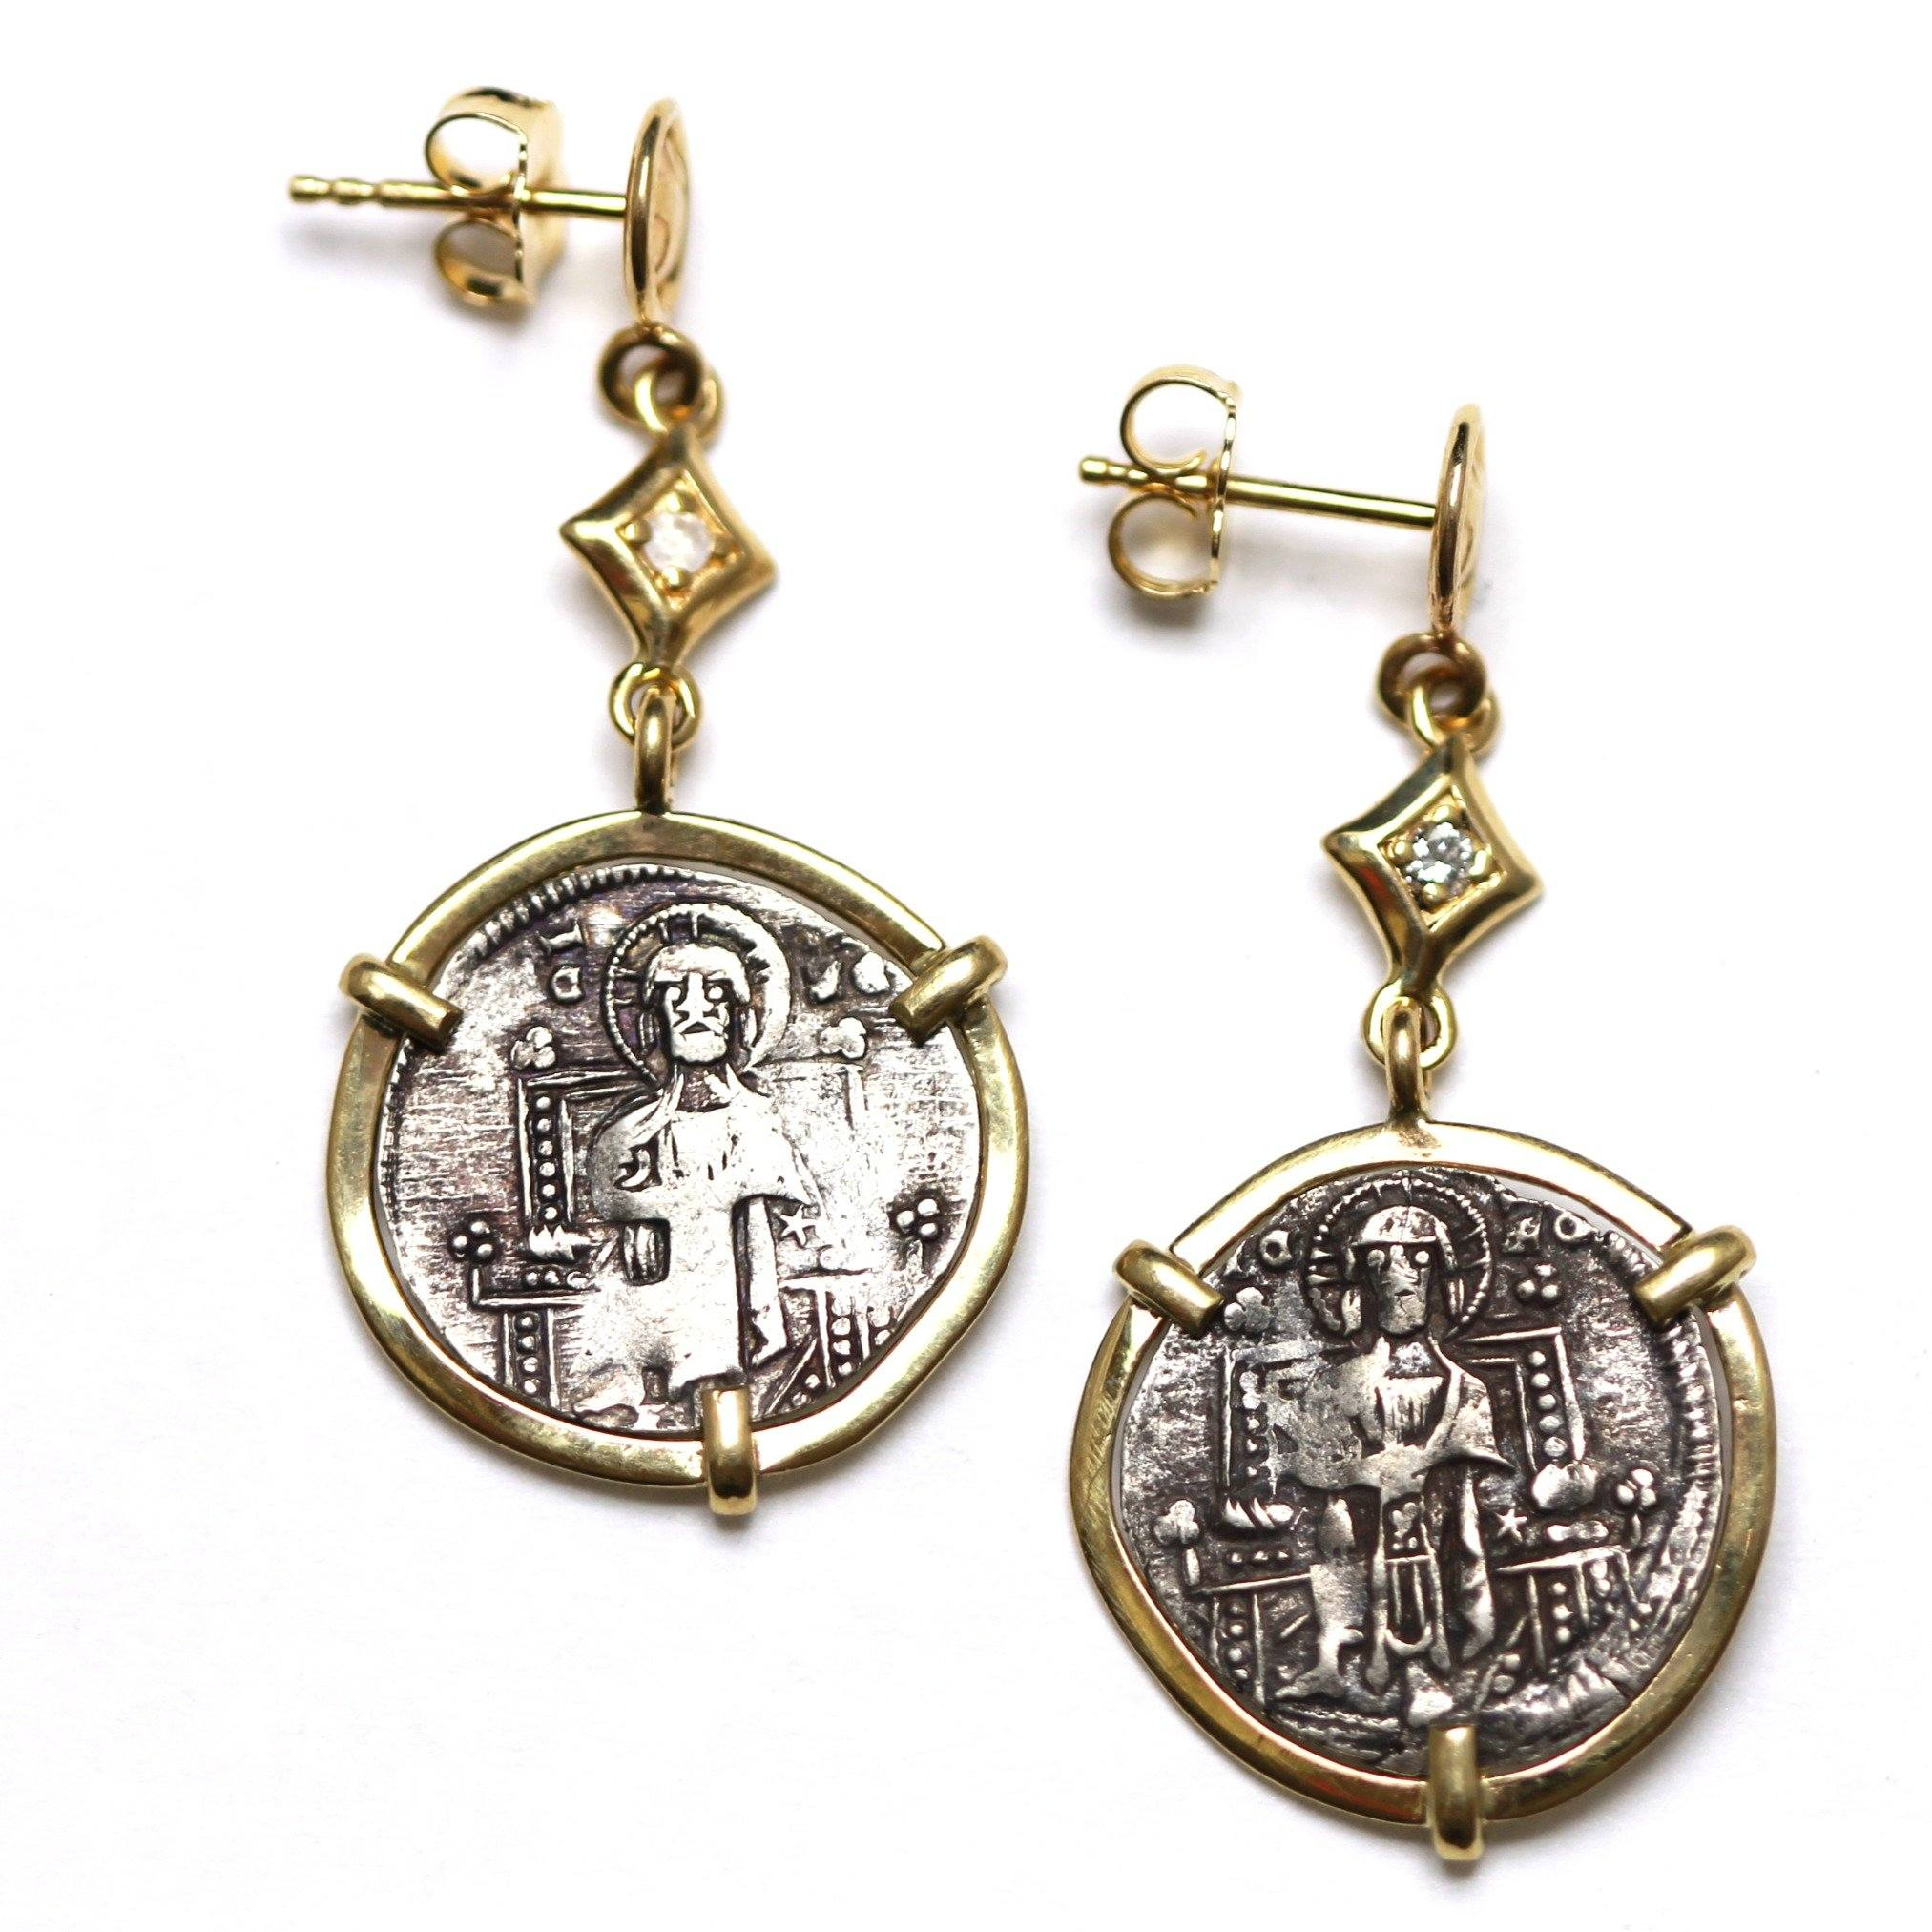 14K Gold Earrings, 0.08 CT Diamond Accents, Venetian Grosso, Ancient Coin Earrings, ID13000 - Erez Ancient Coin Jewelry, ancient coin jewelry, men jewelry, genuine ancient coins, made in the US